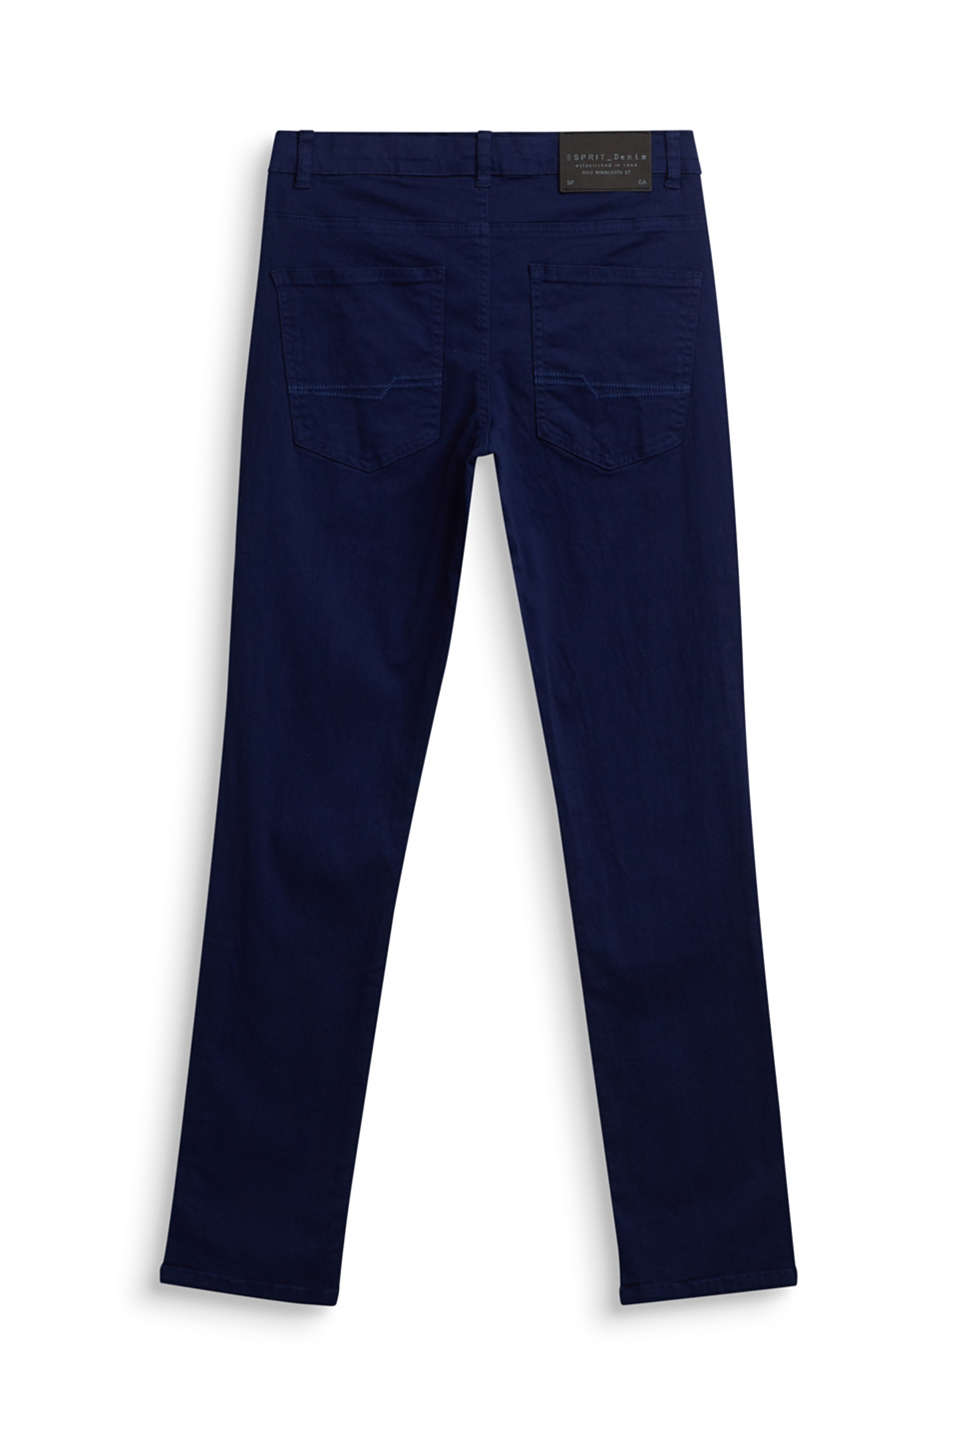 Coloured stretch jeans, adjustable waistband, LCMARINE BLUE, detail image number 1